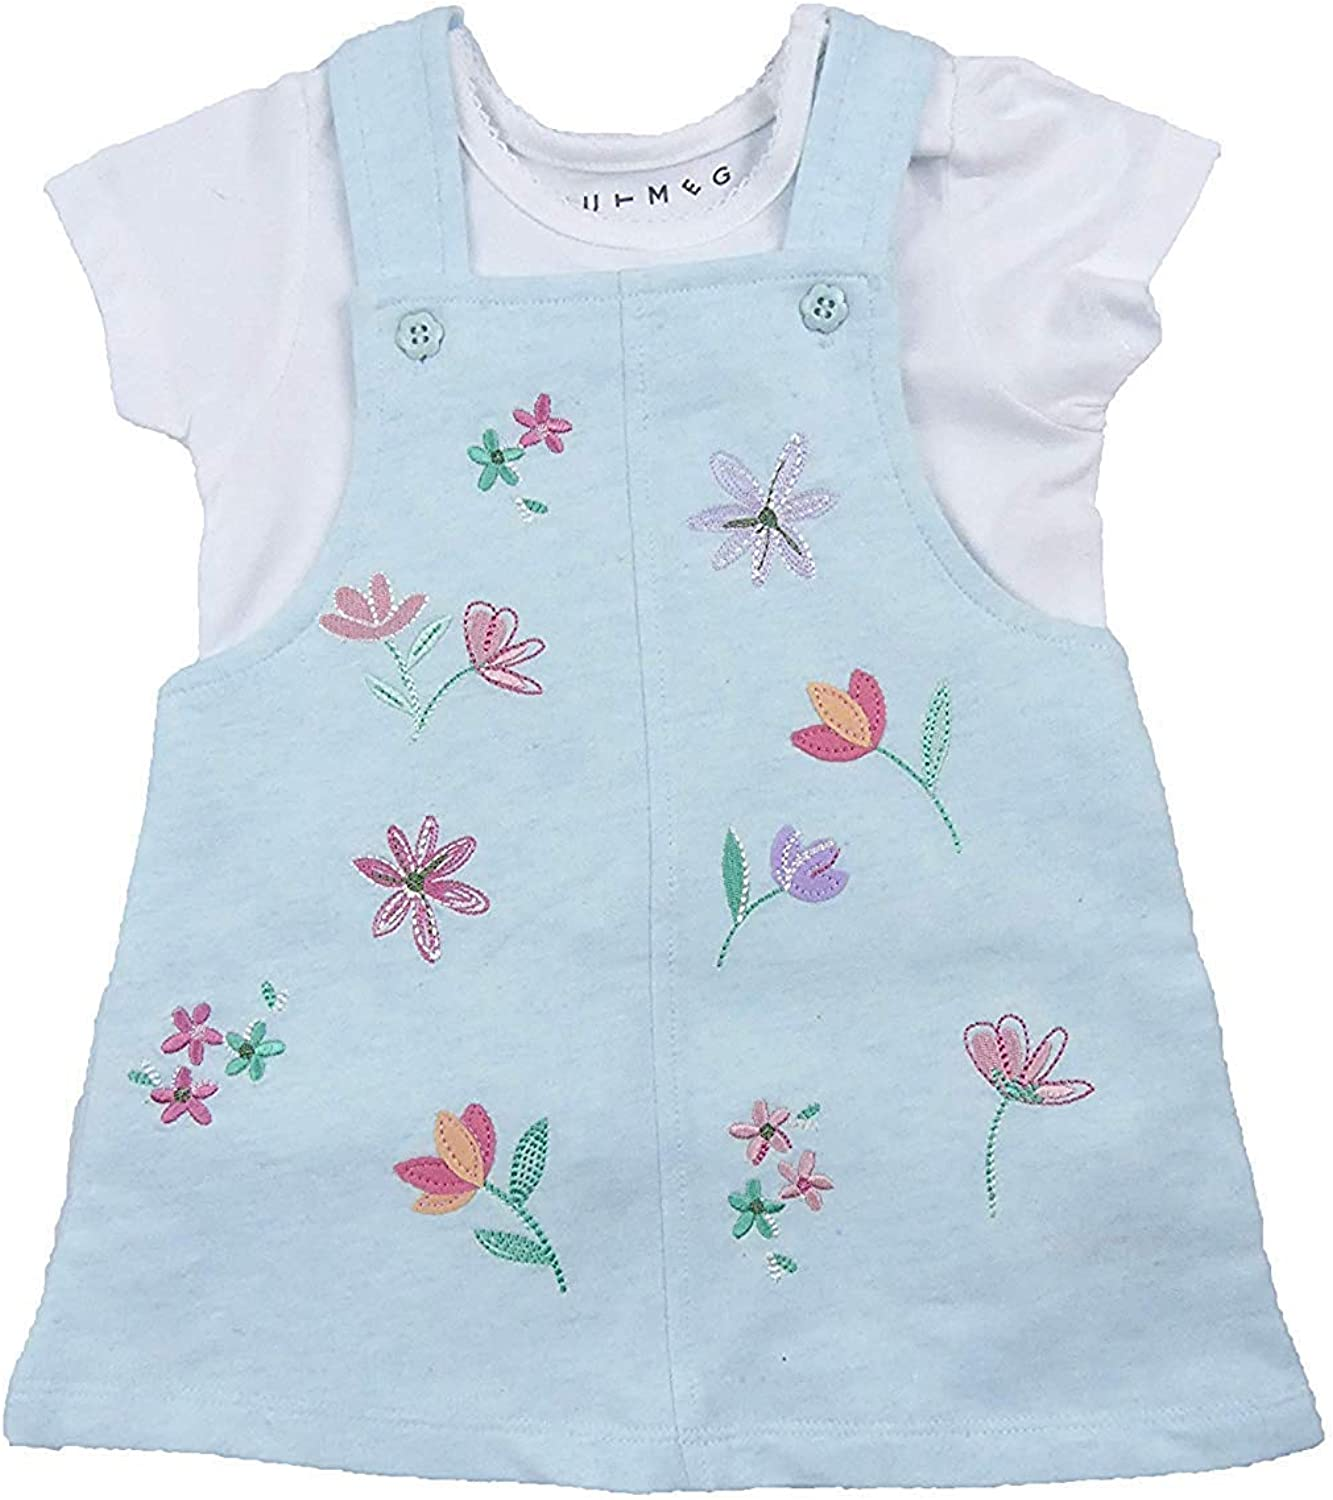 Baby Girls Pinafore Dress and T Shirt Two Piece Outfit Summer Holiday Wear